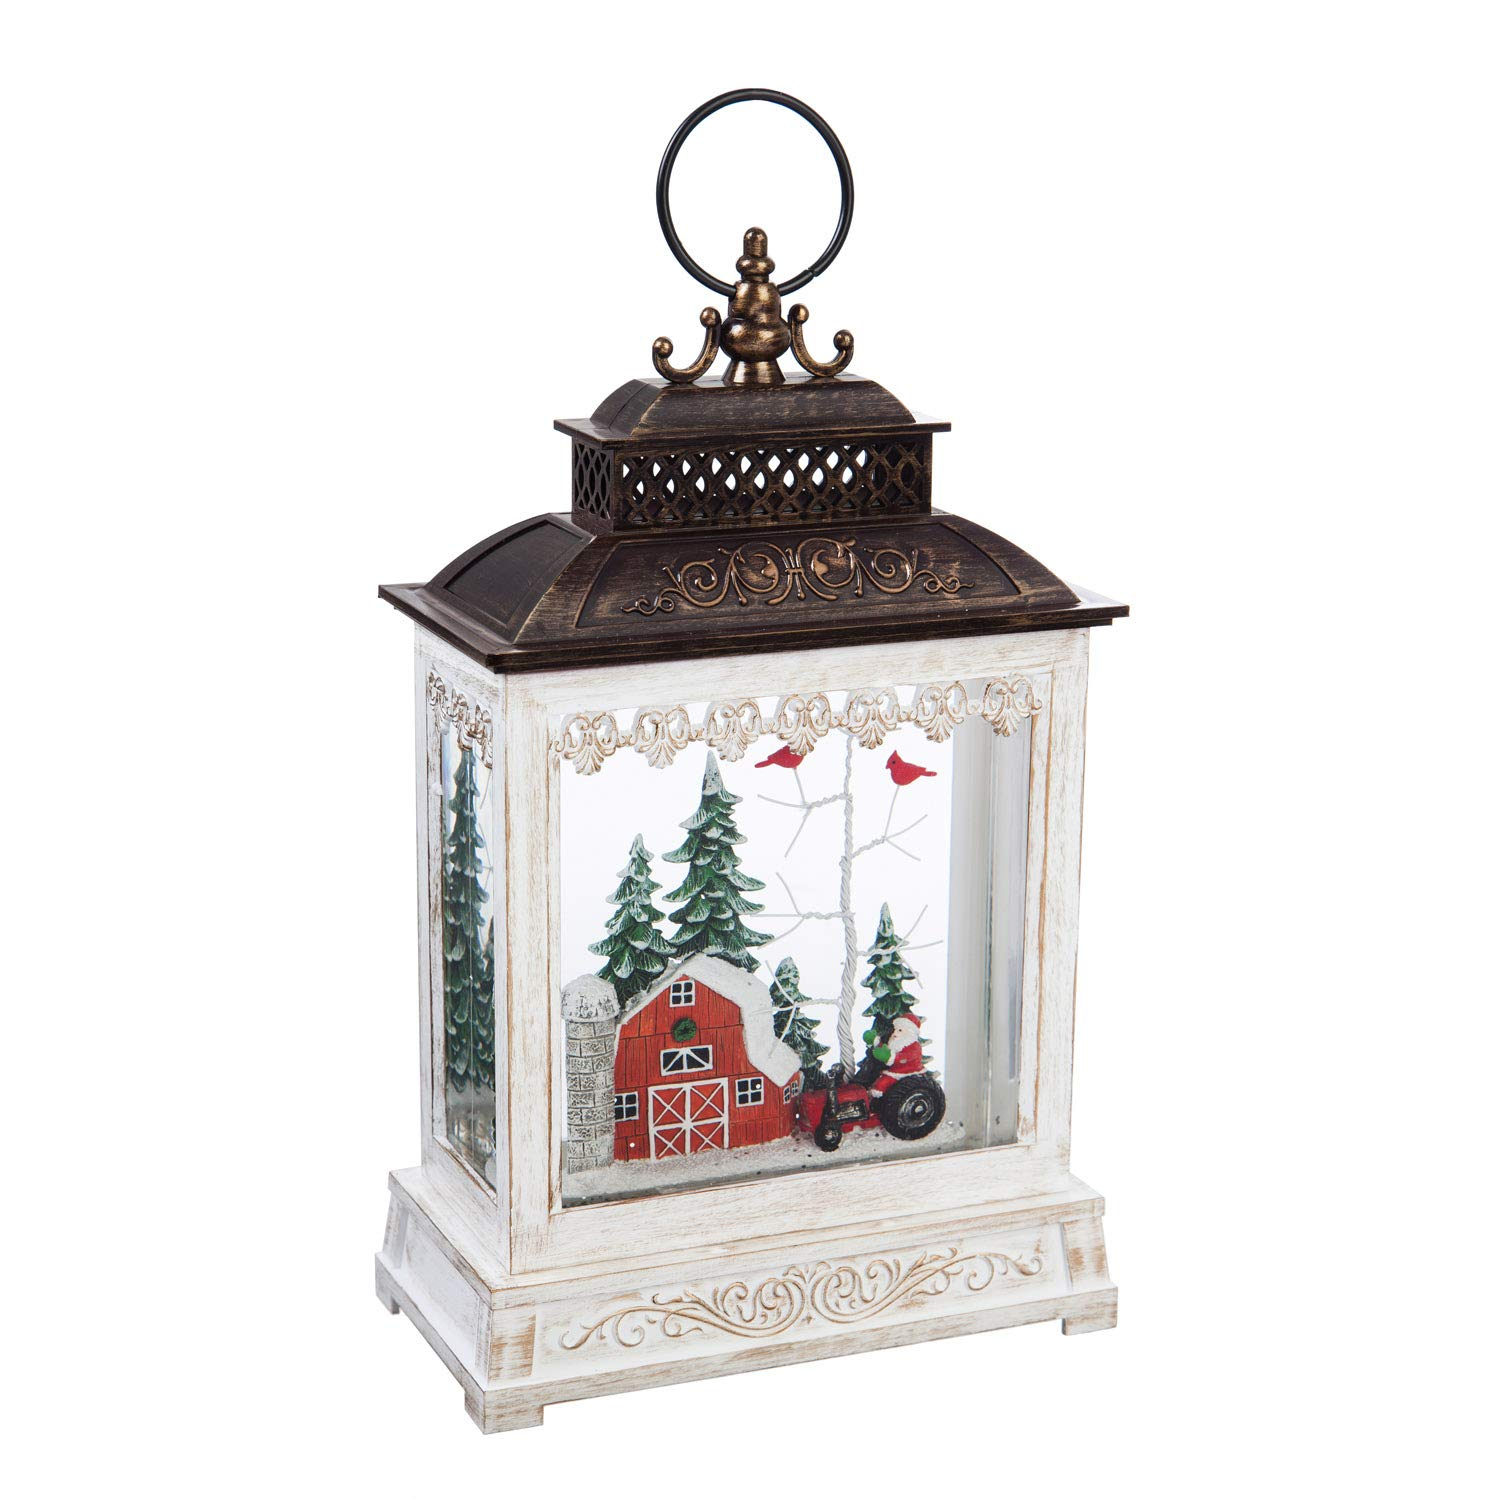 """Cypress Home Winter Barn LED Illuminated Water-Filled Musical Lantern with Spinning Action and Timer, 19.99"""" H"""